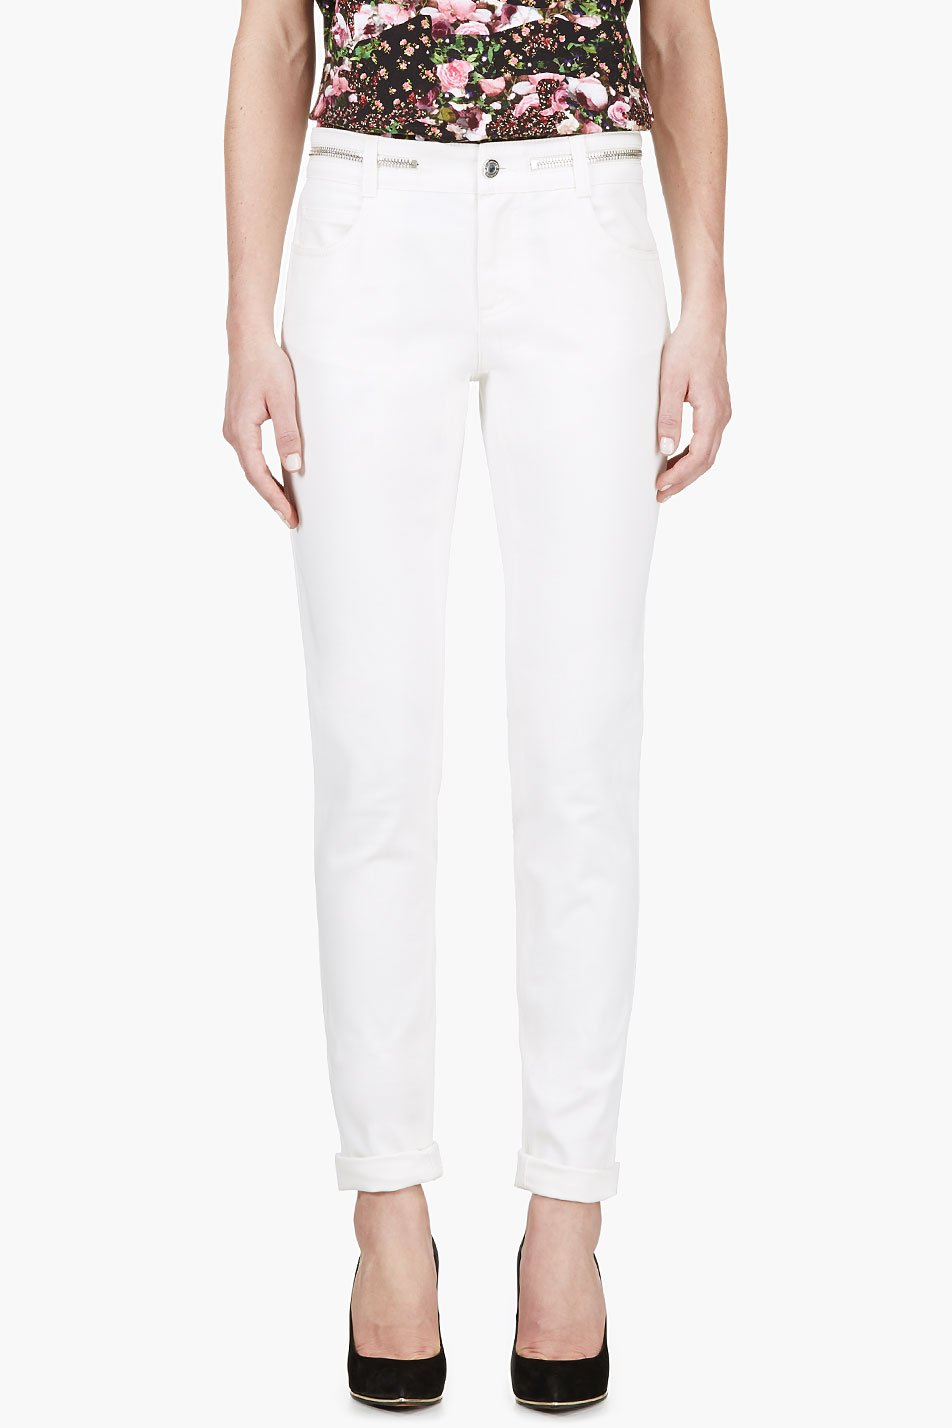 Givenchy ivory white zip_waist jeans